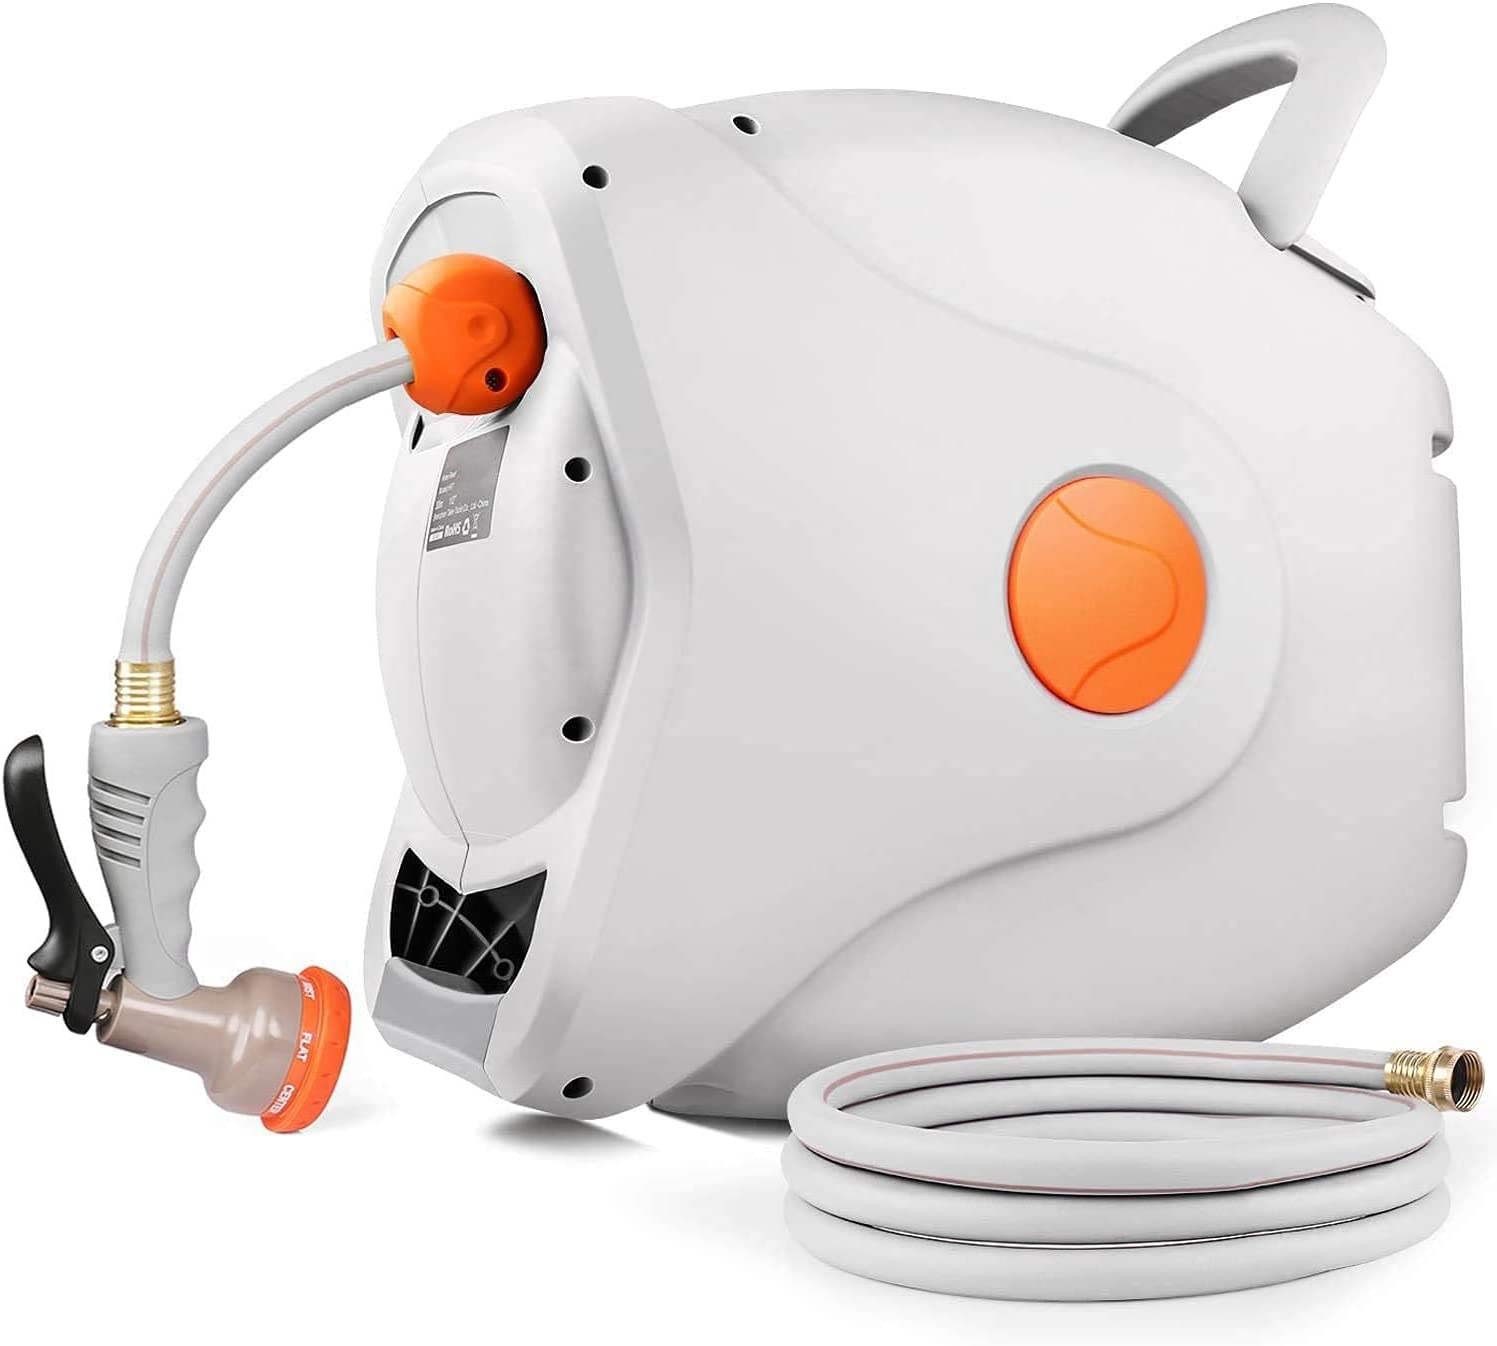 """GHR5A 82ft x 5/8""""  8ft  Wall Mounted Retractable Hose Reel $77.99 Coupon"""